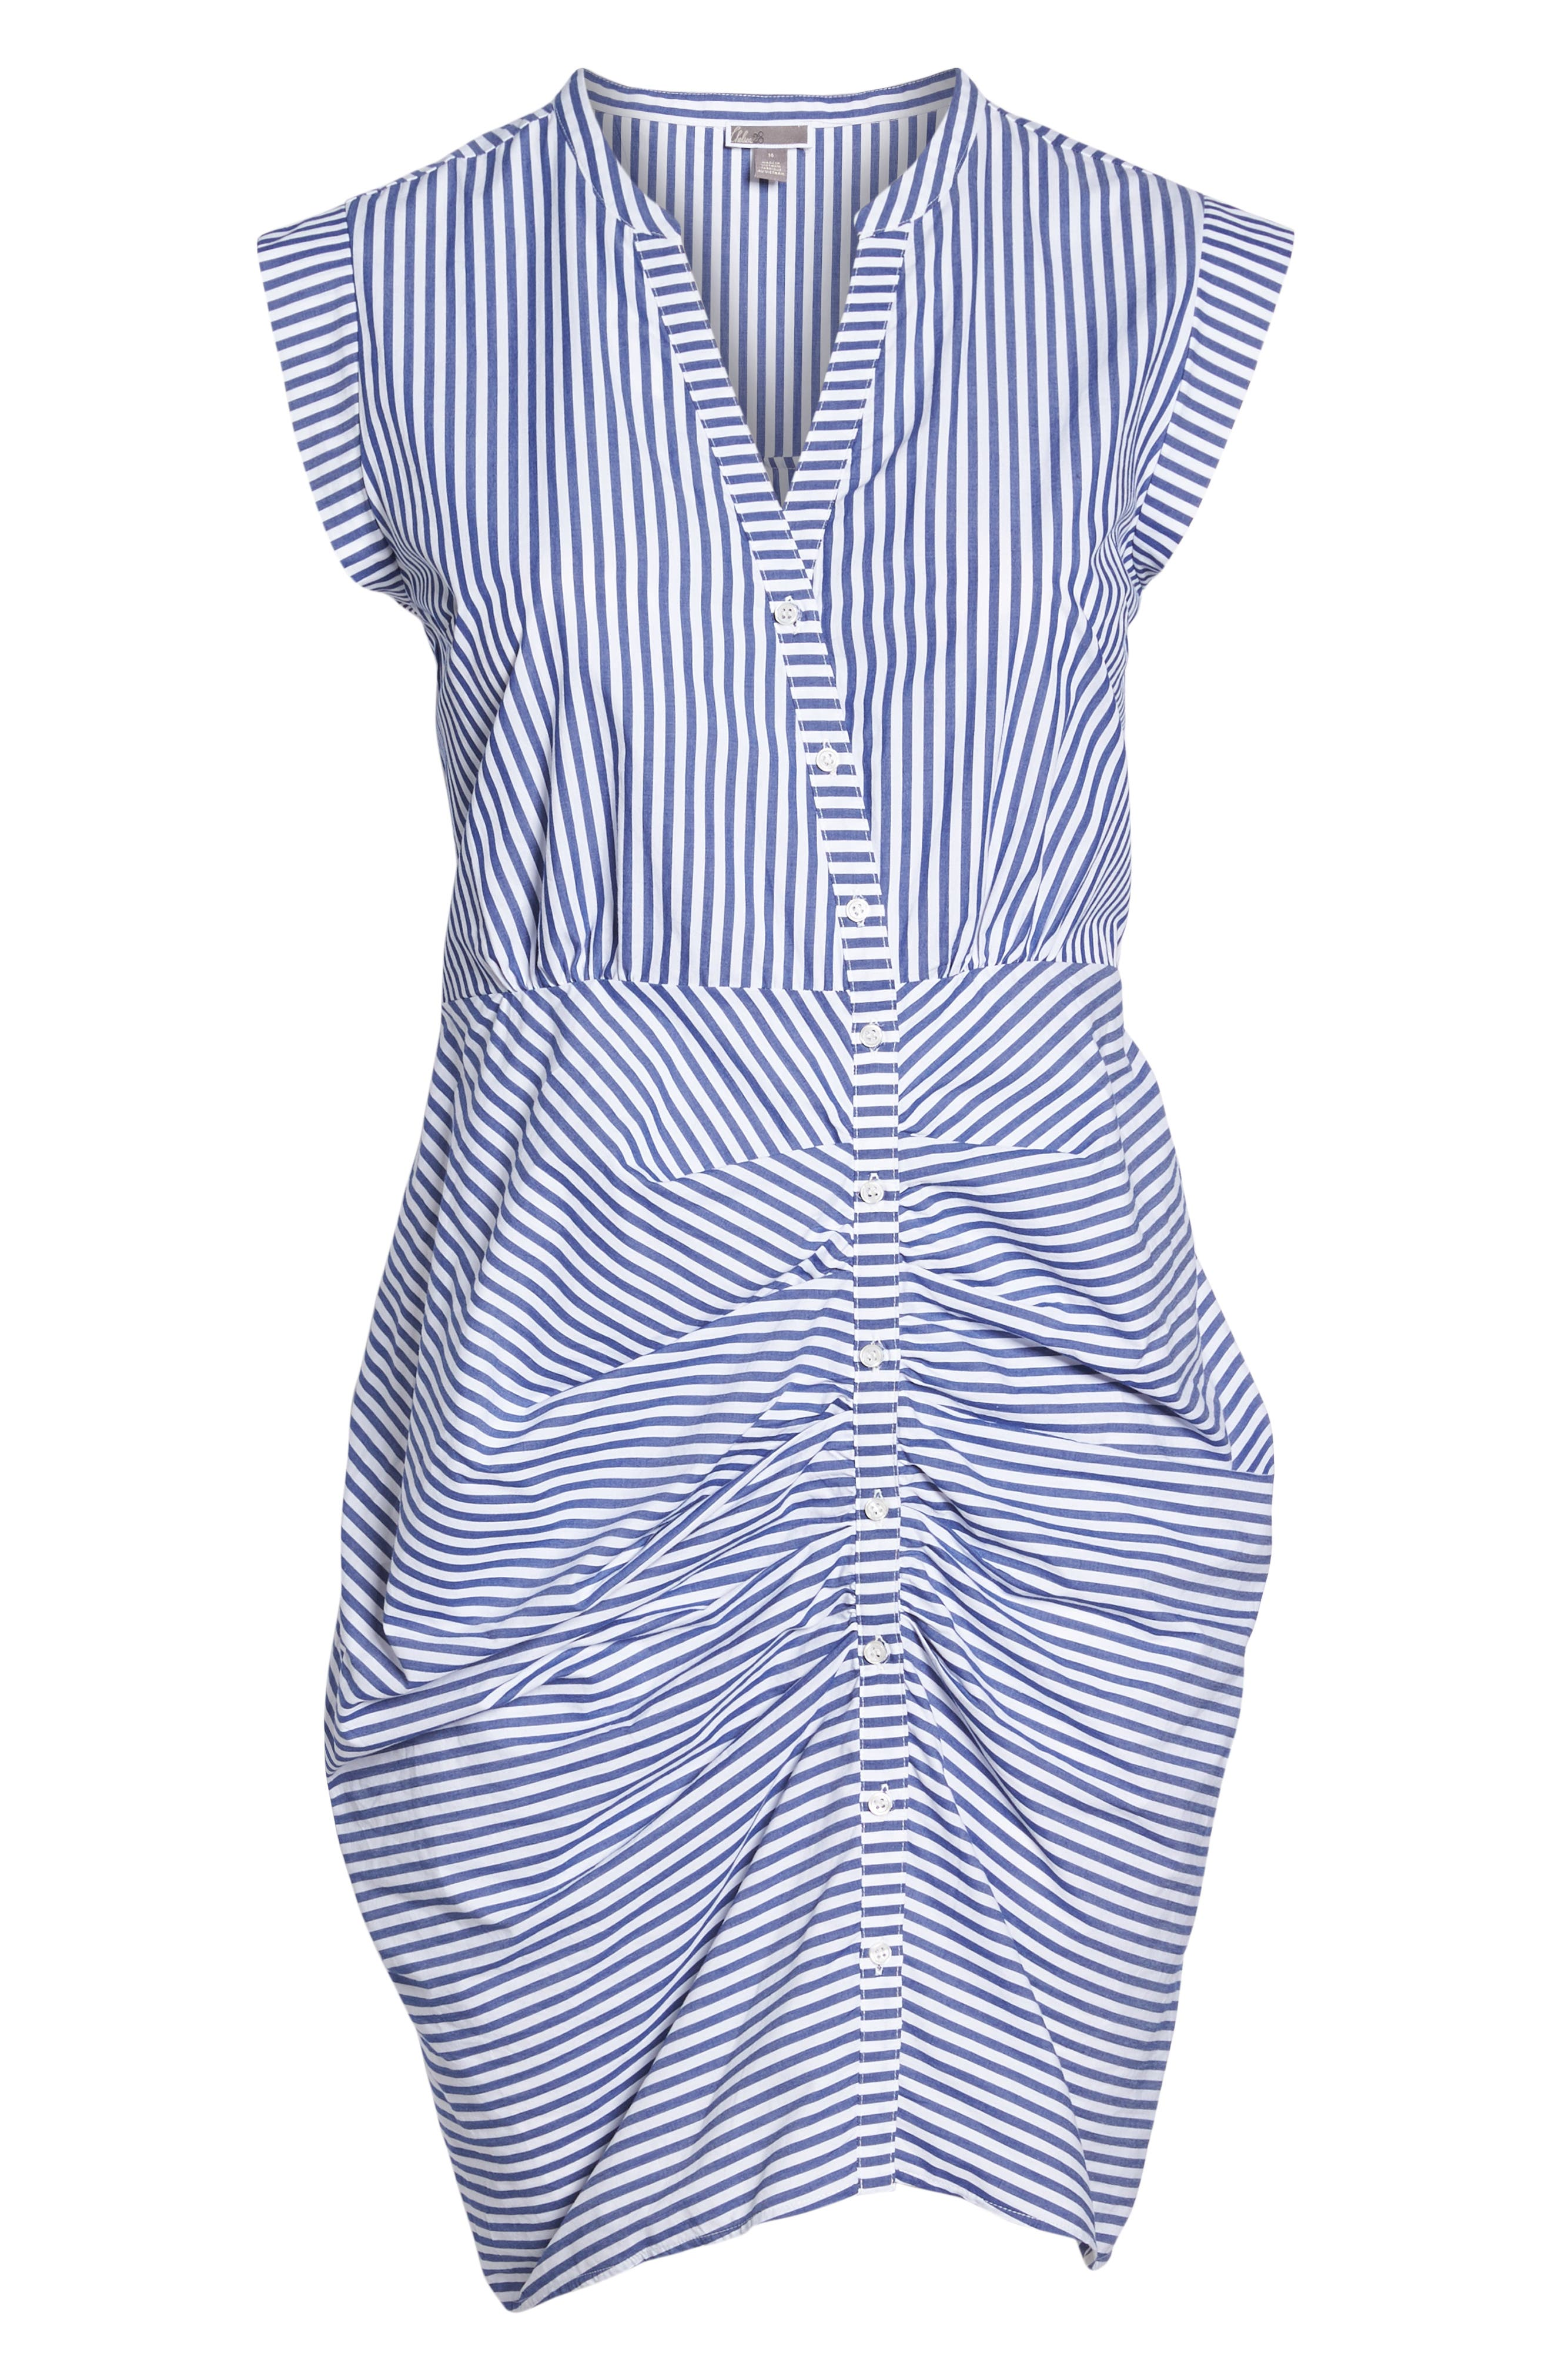 Stripe Ruched Cotton Shirtdress,                             Alternate thumbnail 13, color,                             400